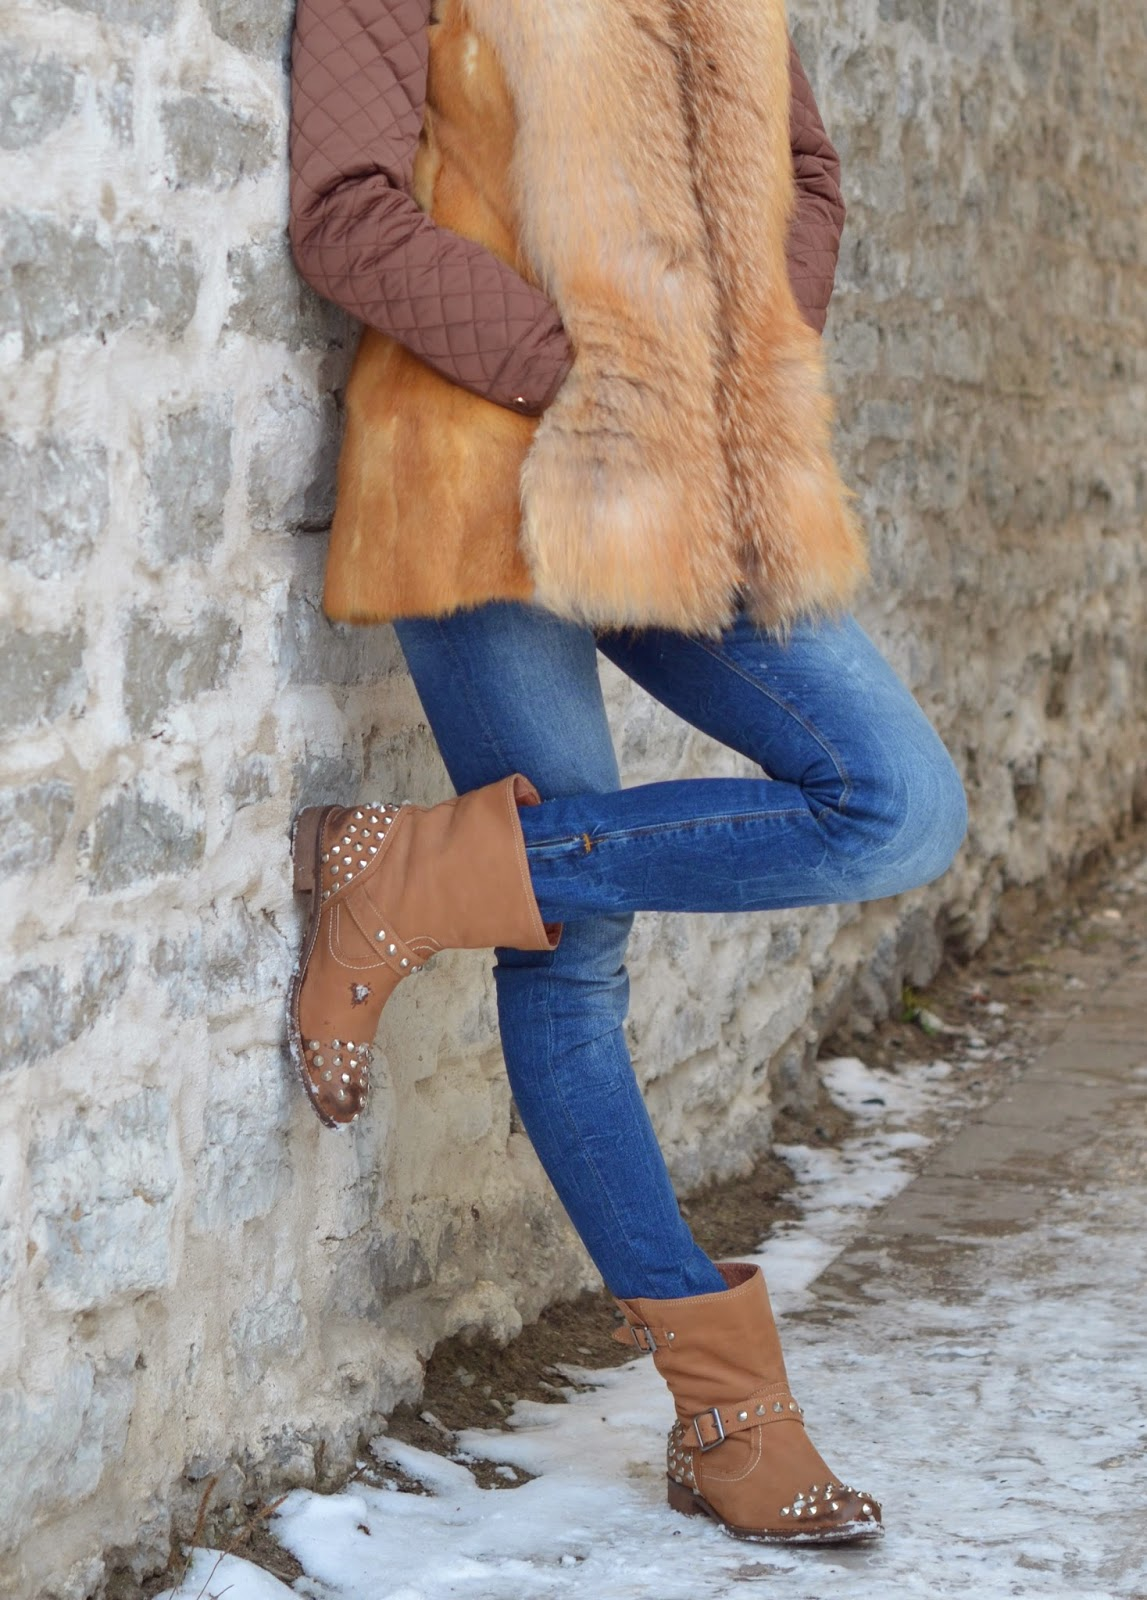 quilted-jacket-fur-vest-jeans-ankle-boots